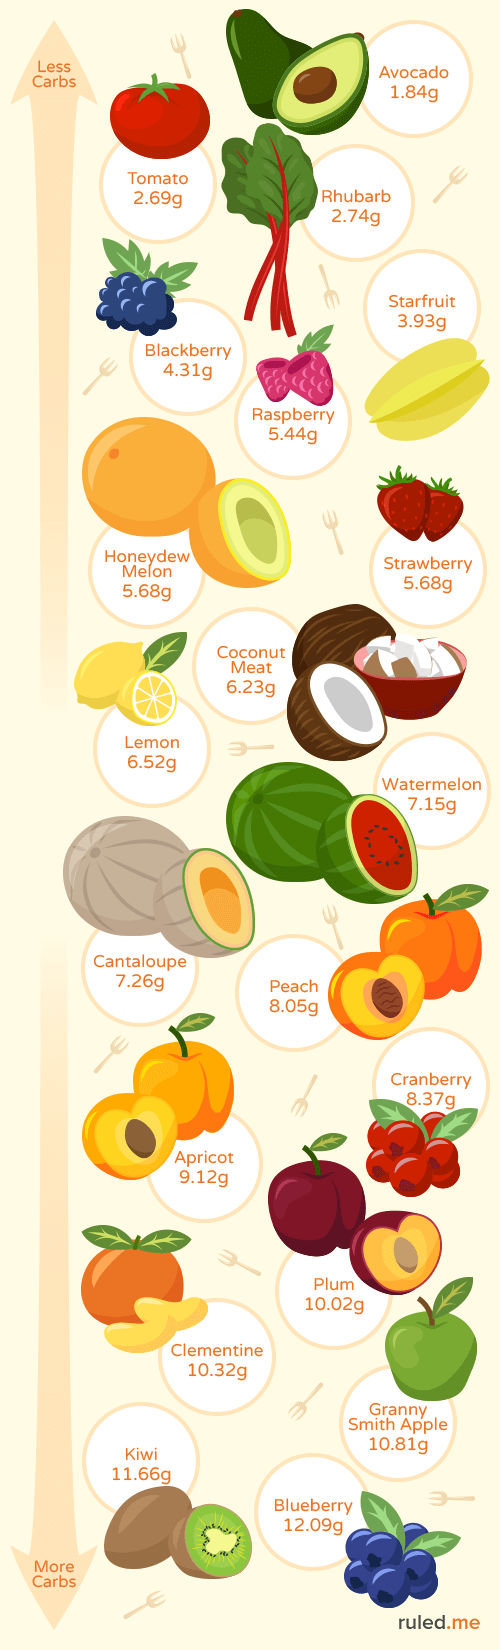 Carbs In Oranges >> Best Low Carb Fruits And Which To Avoid Ruled Me